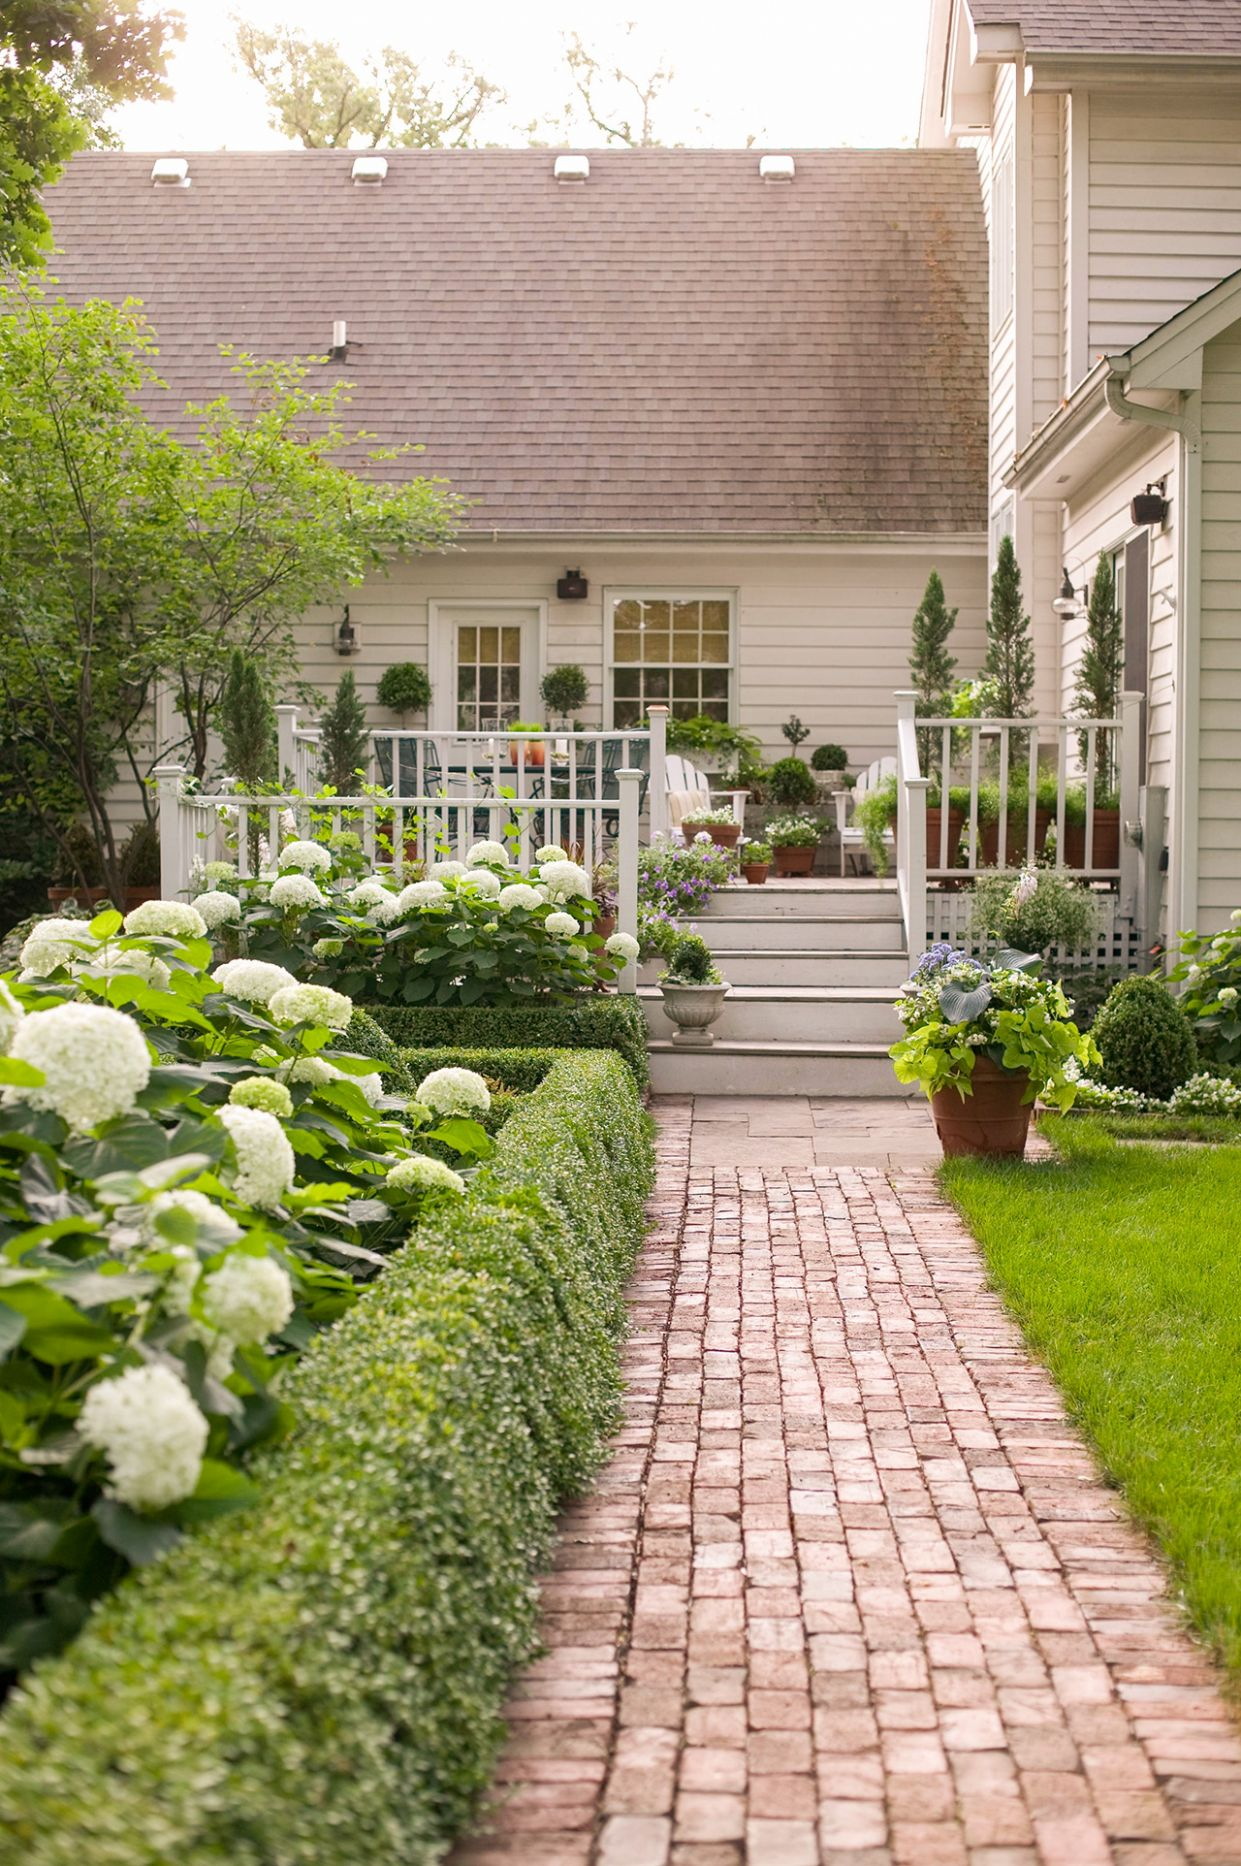 8 Simple Solutions for Small-Space Landscapes | Better Homes ...